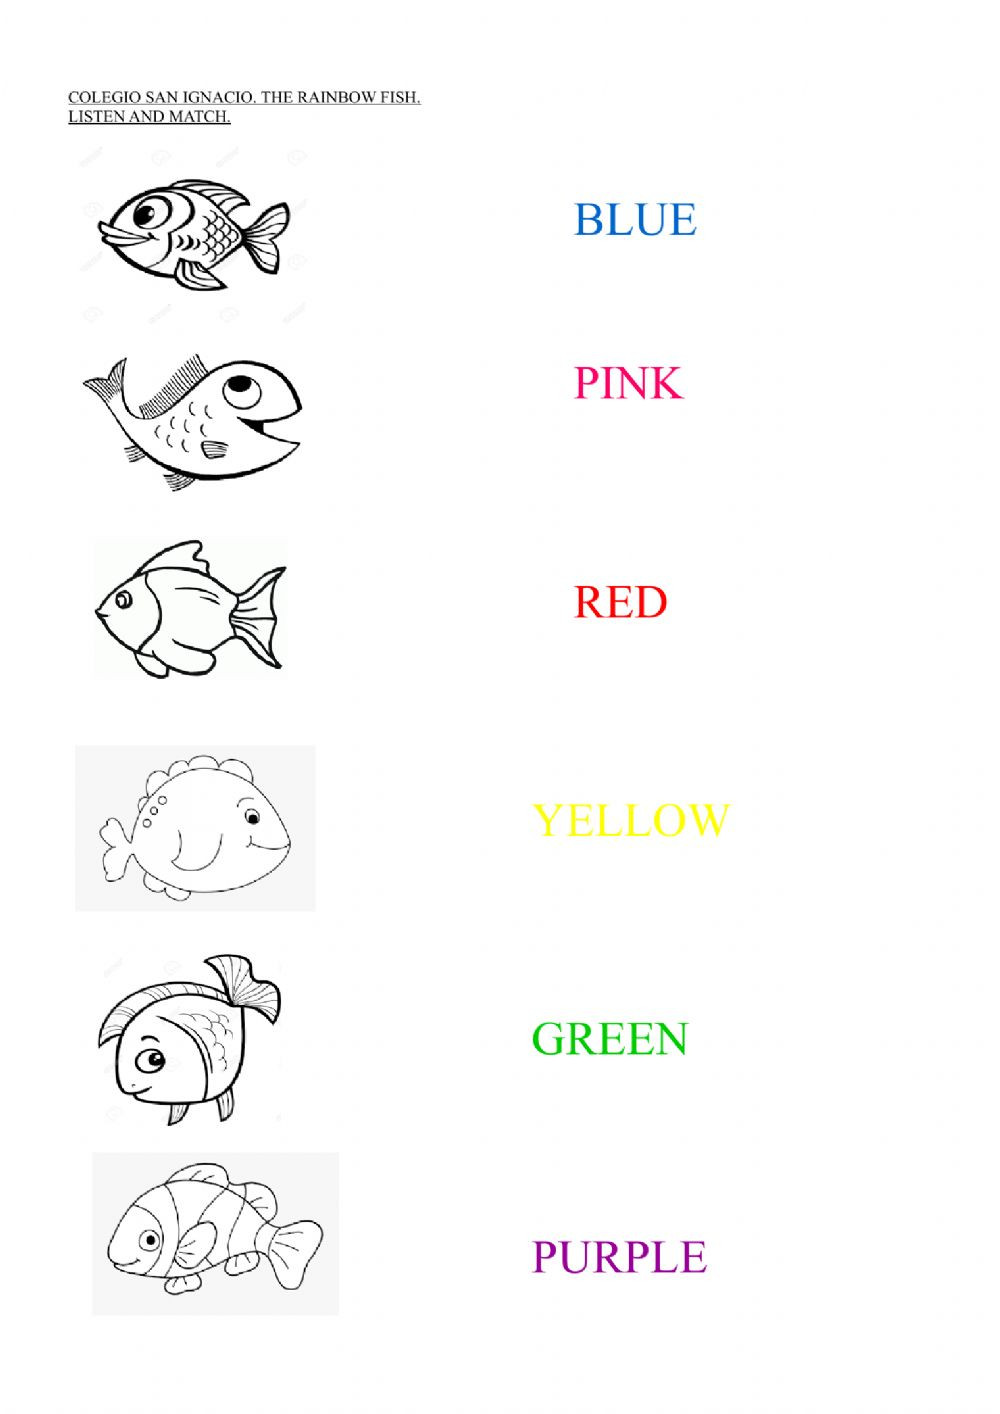 Rainbow Fish Printable Worksheets the Rainbow Fish Interactive Worksheet